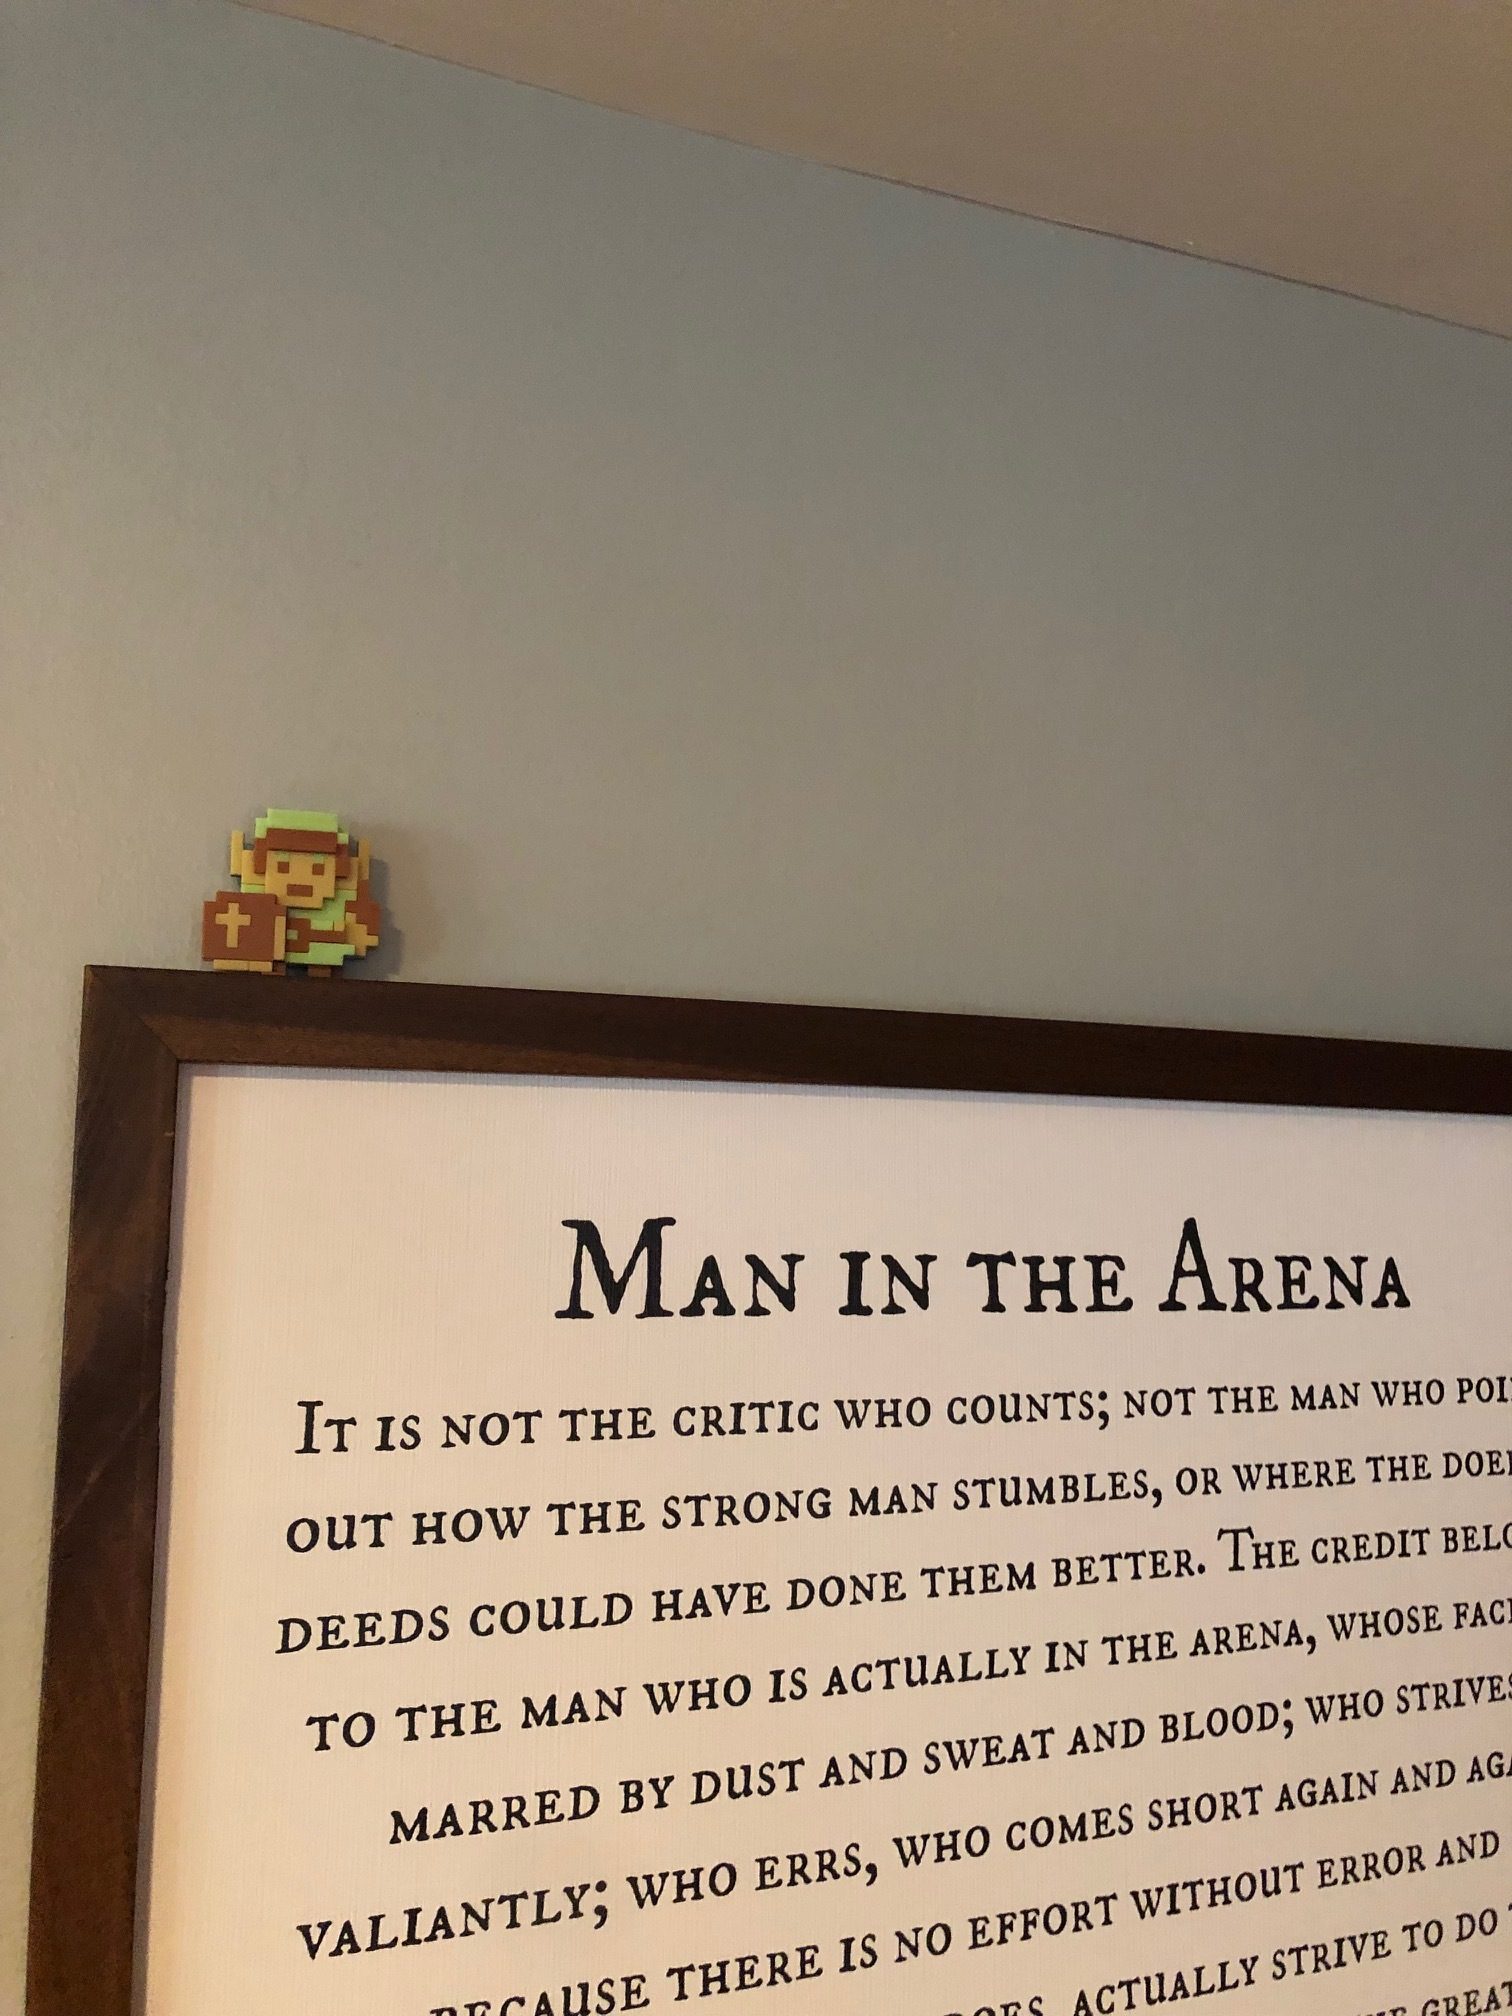 Link is the Man in the Arena